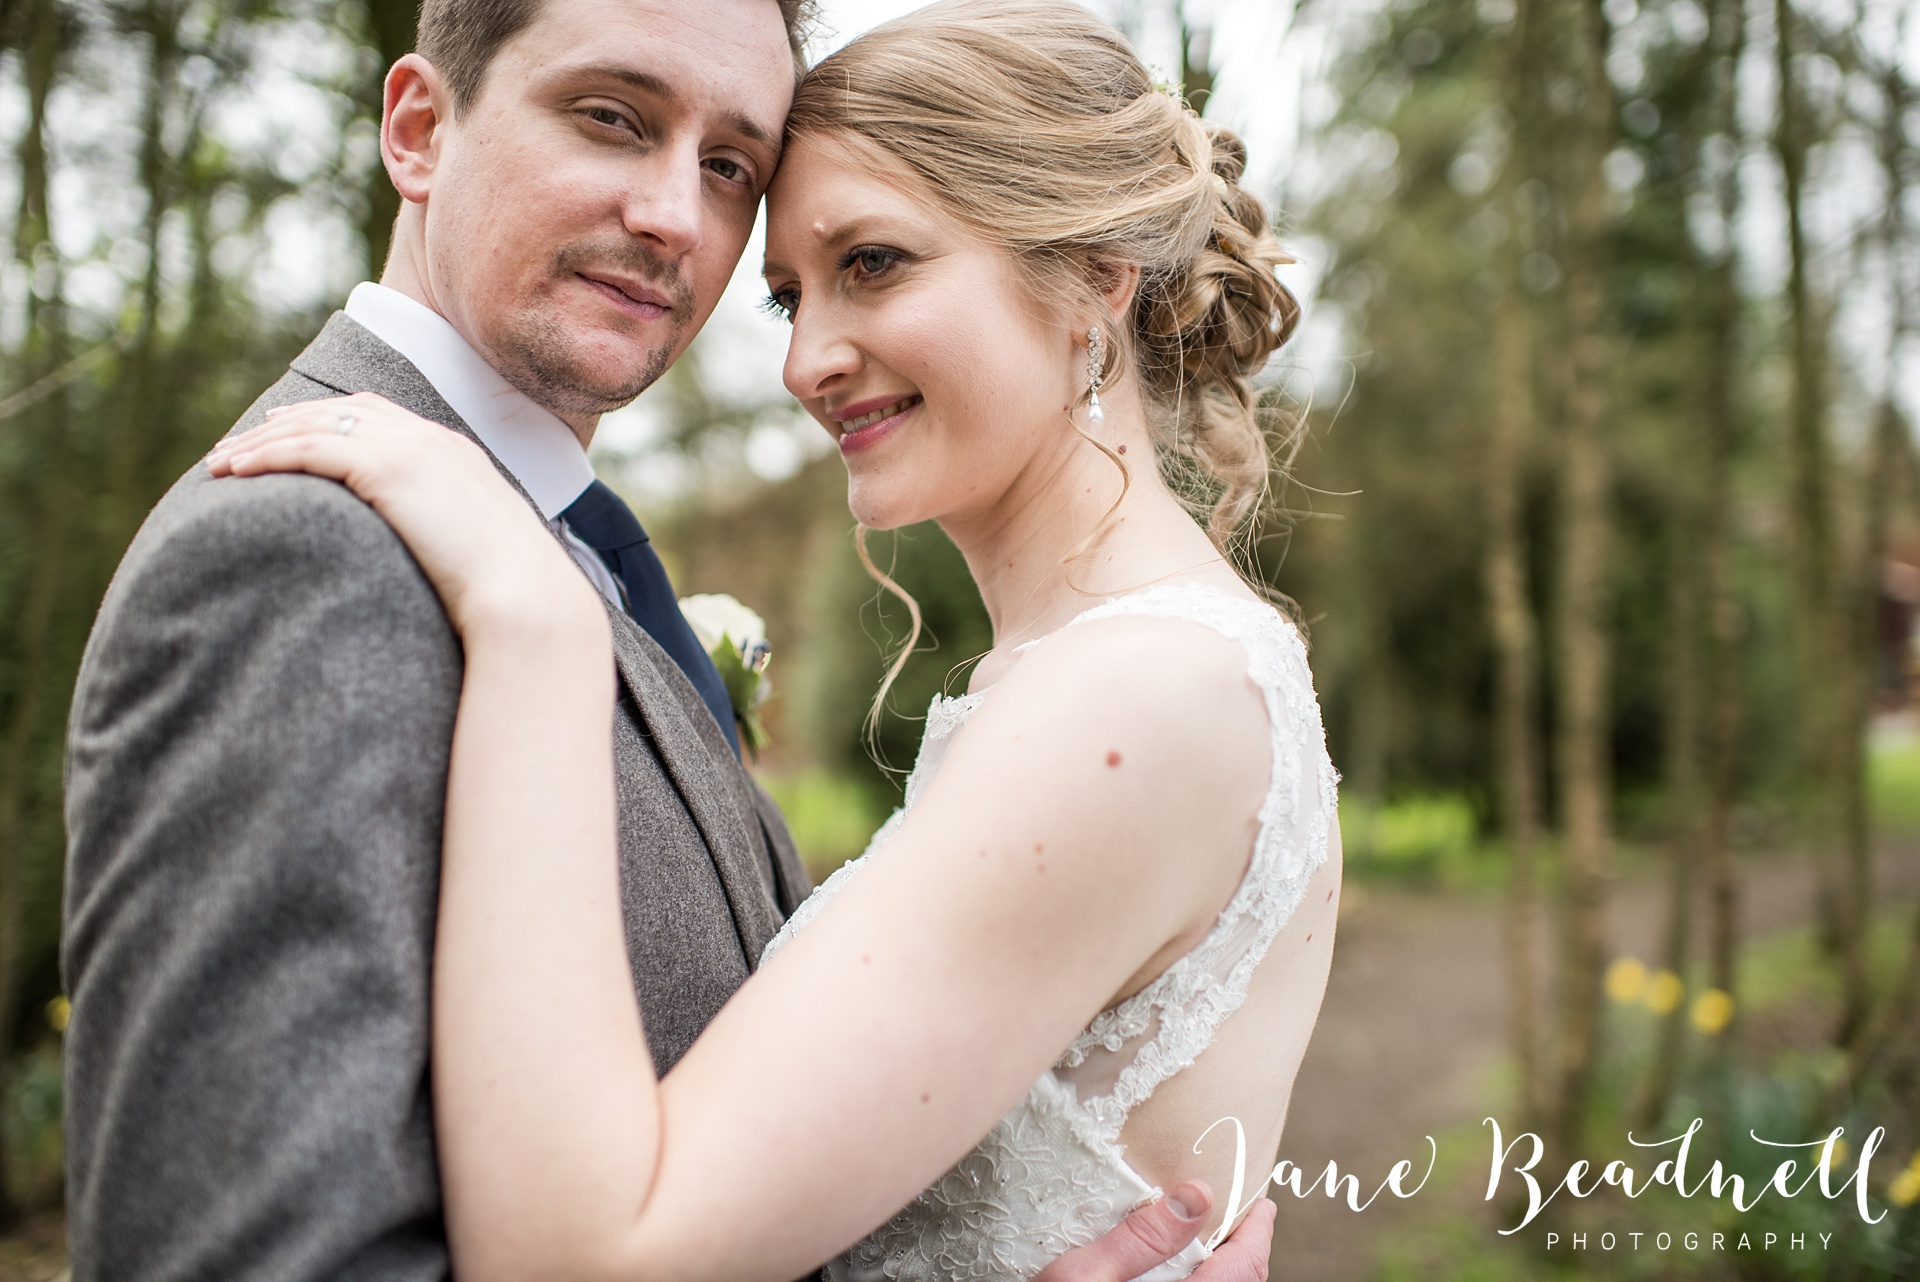 Otley Chevin Lodge wedding photography by Jane Beadnell Photography Leeds_0095